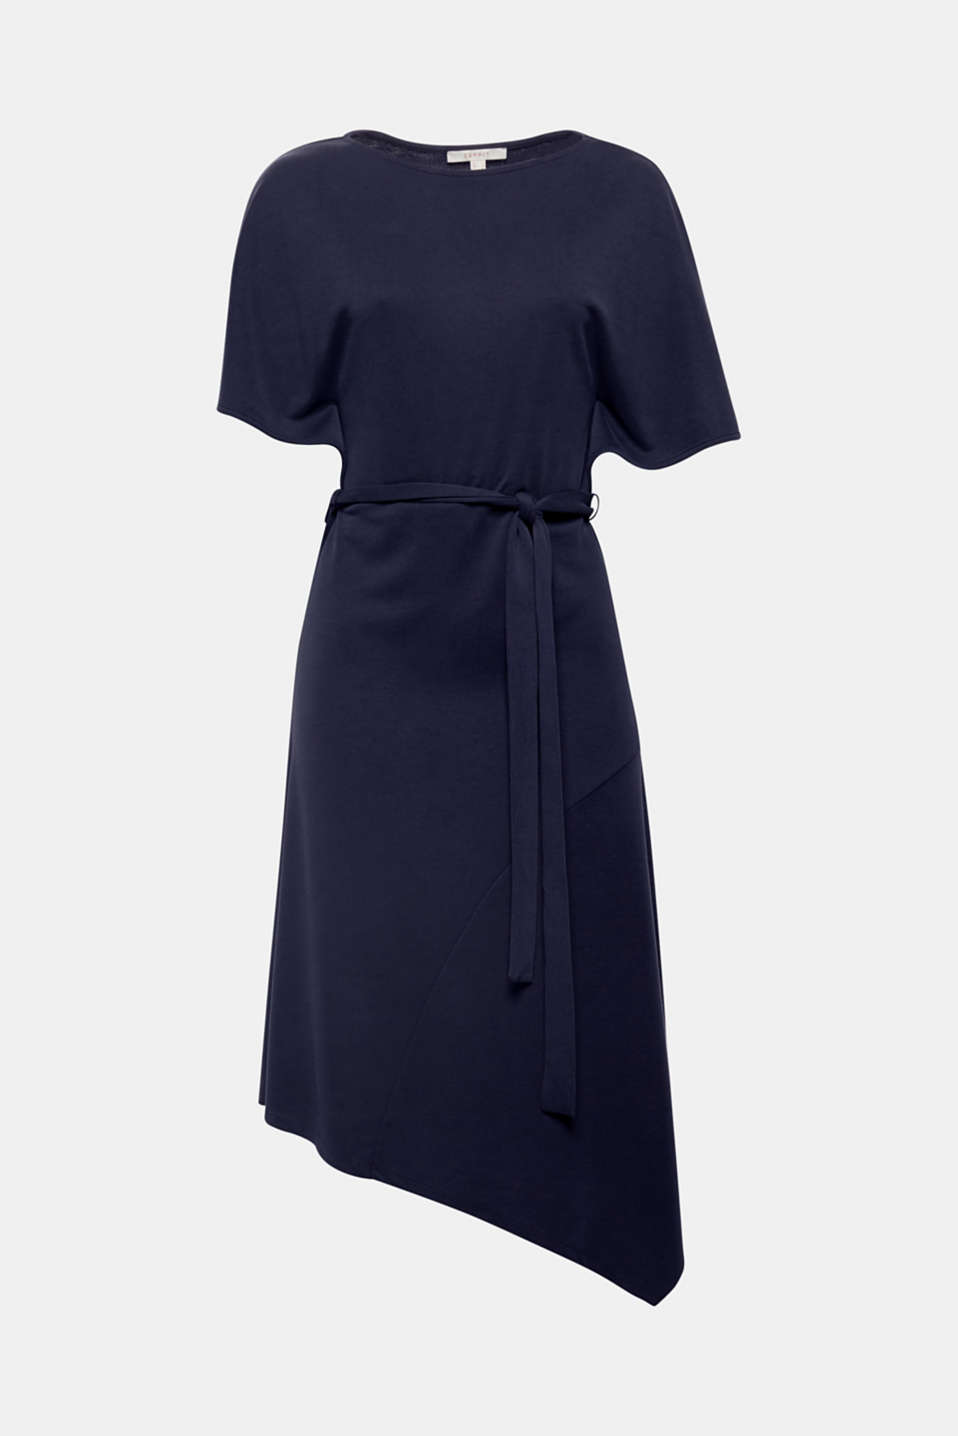 The new dresses are super comfortable and wow with new cuts – just like this piece in incredibly soft jersey with batwing sleeves, tie-around belt and asymmetric hem!